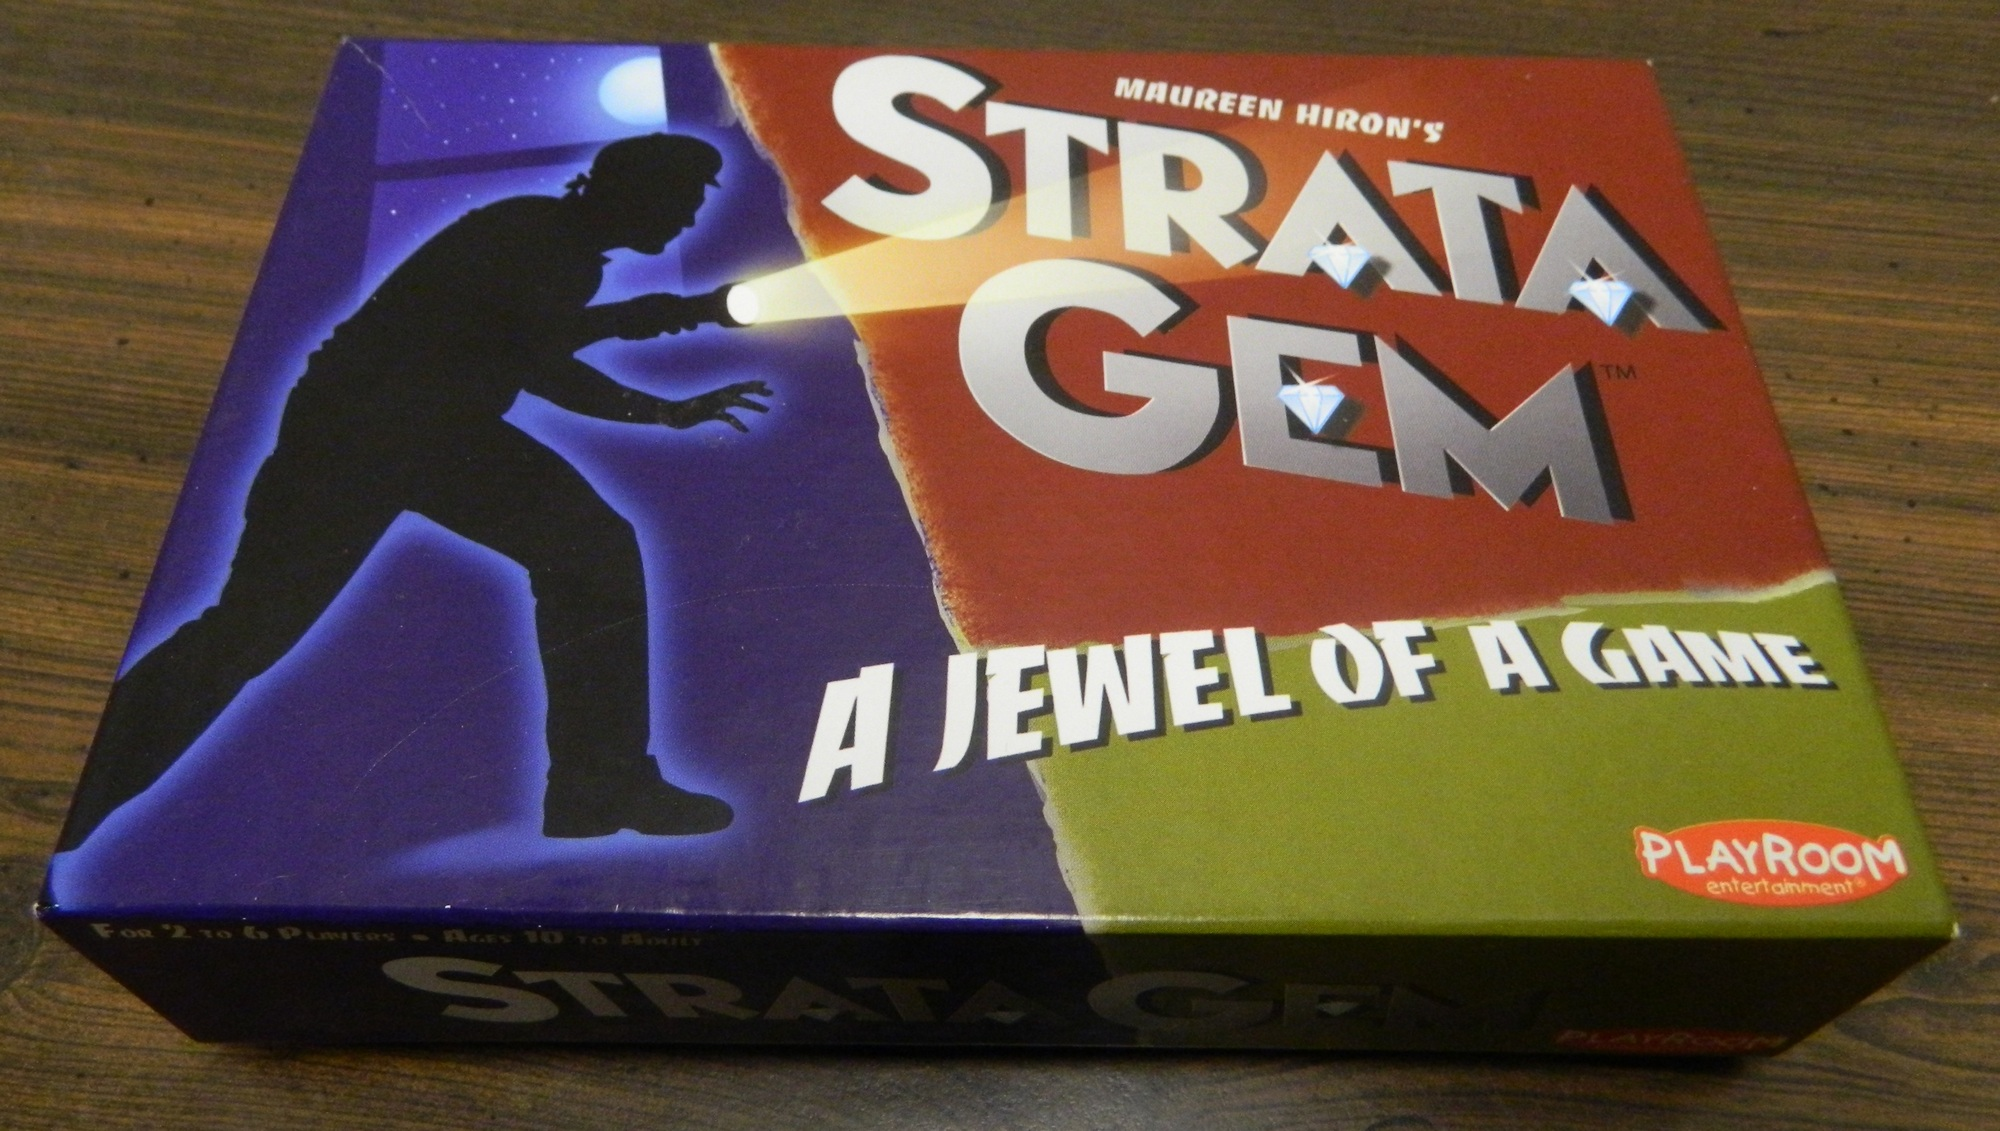 Box for StrataGem